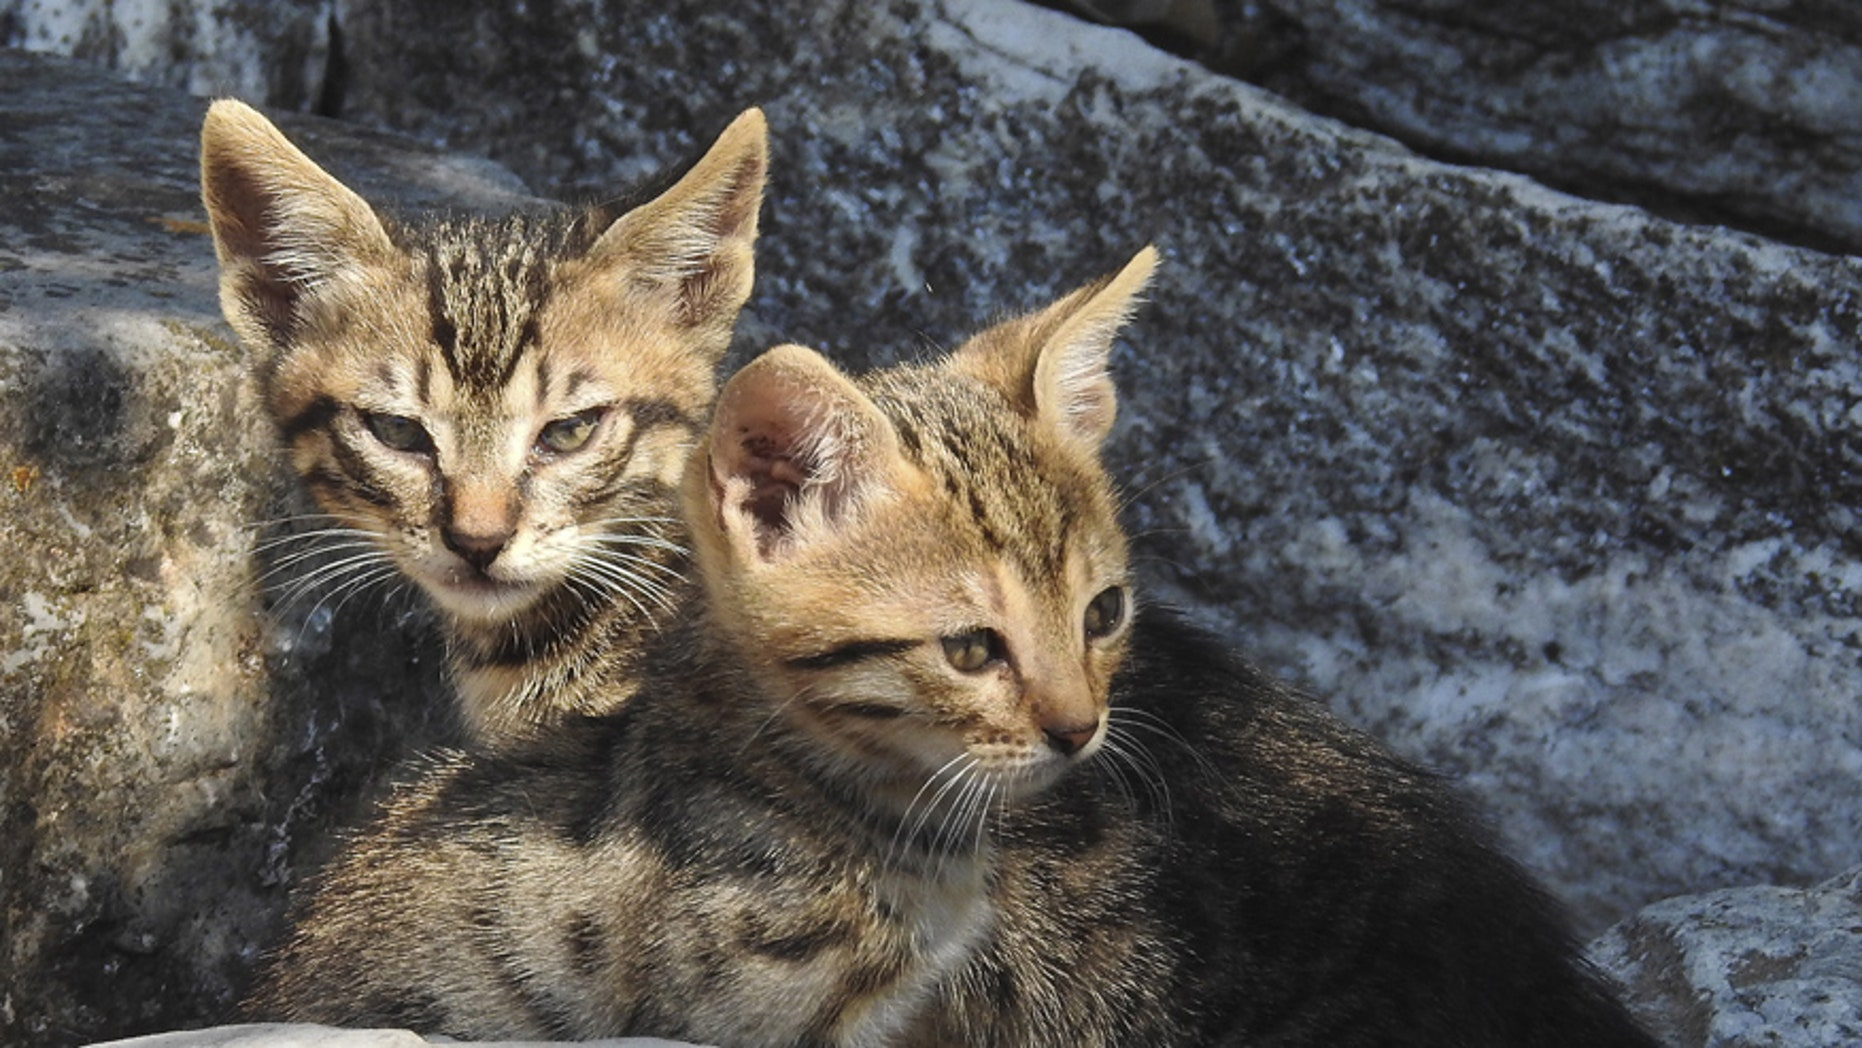 Two kittens lie in the ruins of the ancient Agora in Athens June 20, 2015. REUTERS/Paul Hanna - RTX1HE9V